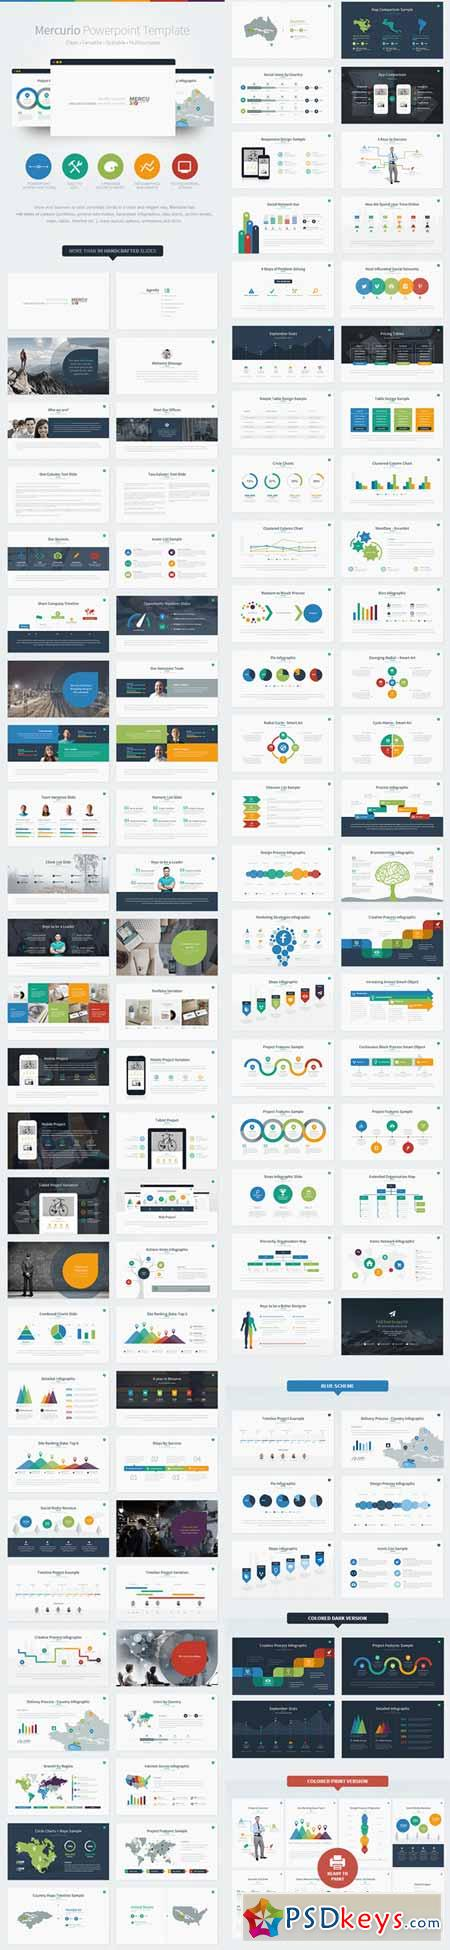 Mercurio Powerpoint Presentation Template 8527176